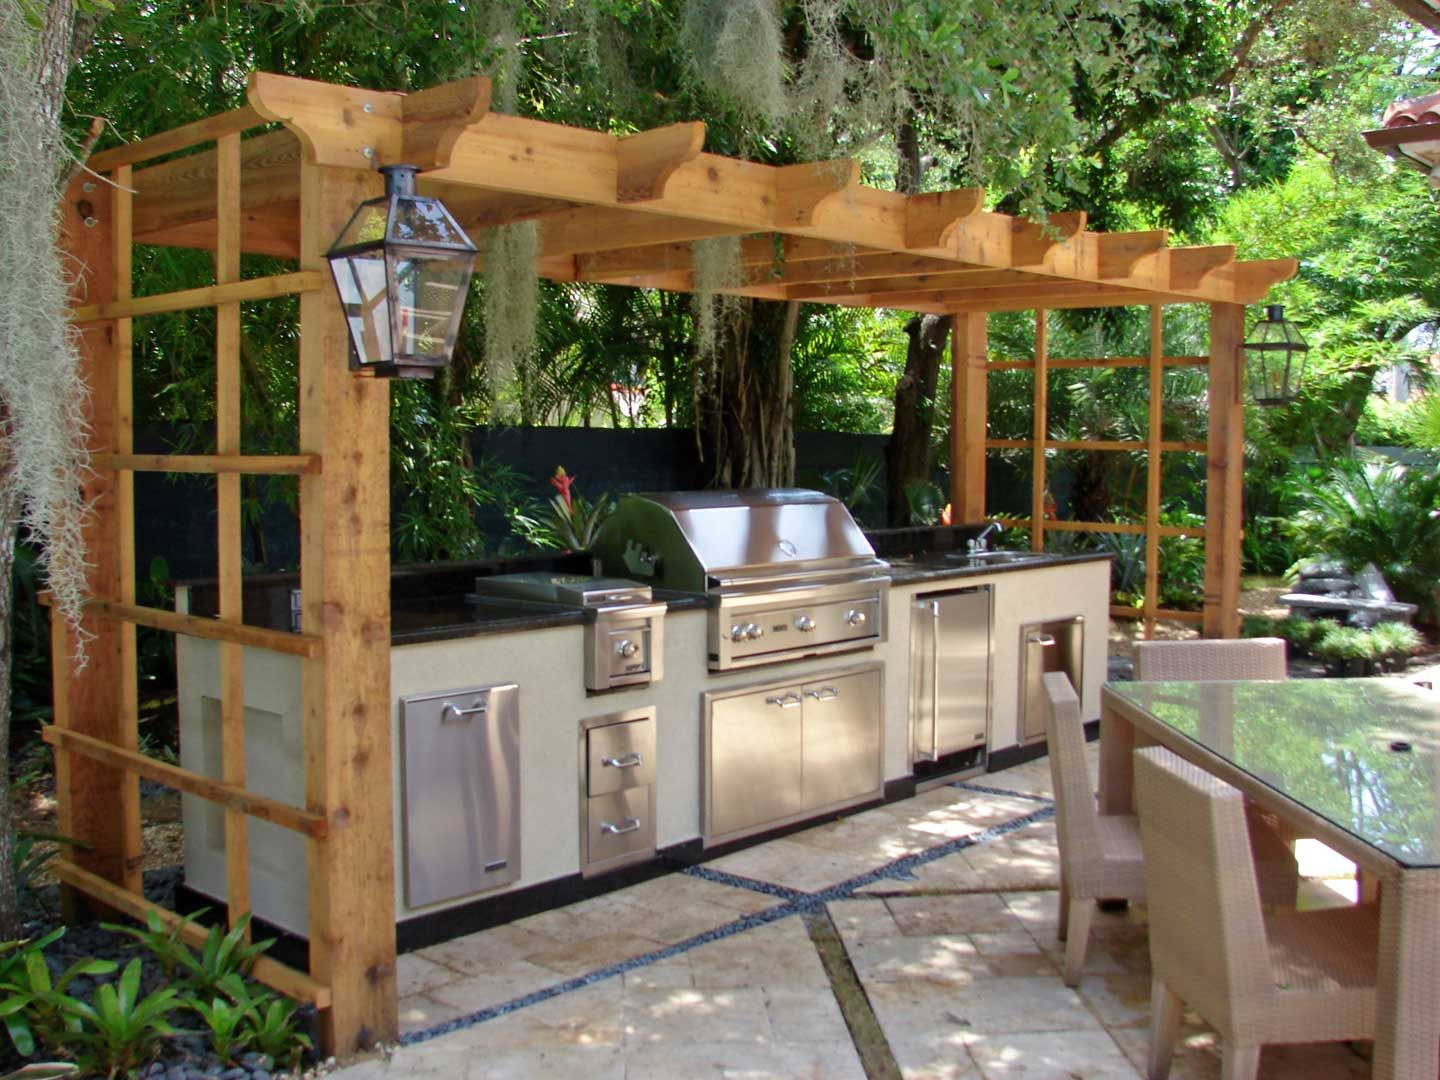 Craigslist kalamazoo kitchen cabinets - Find This Pin And More On Outdoor Kitchen Ideas